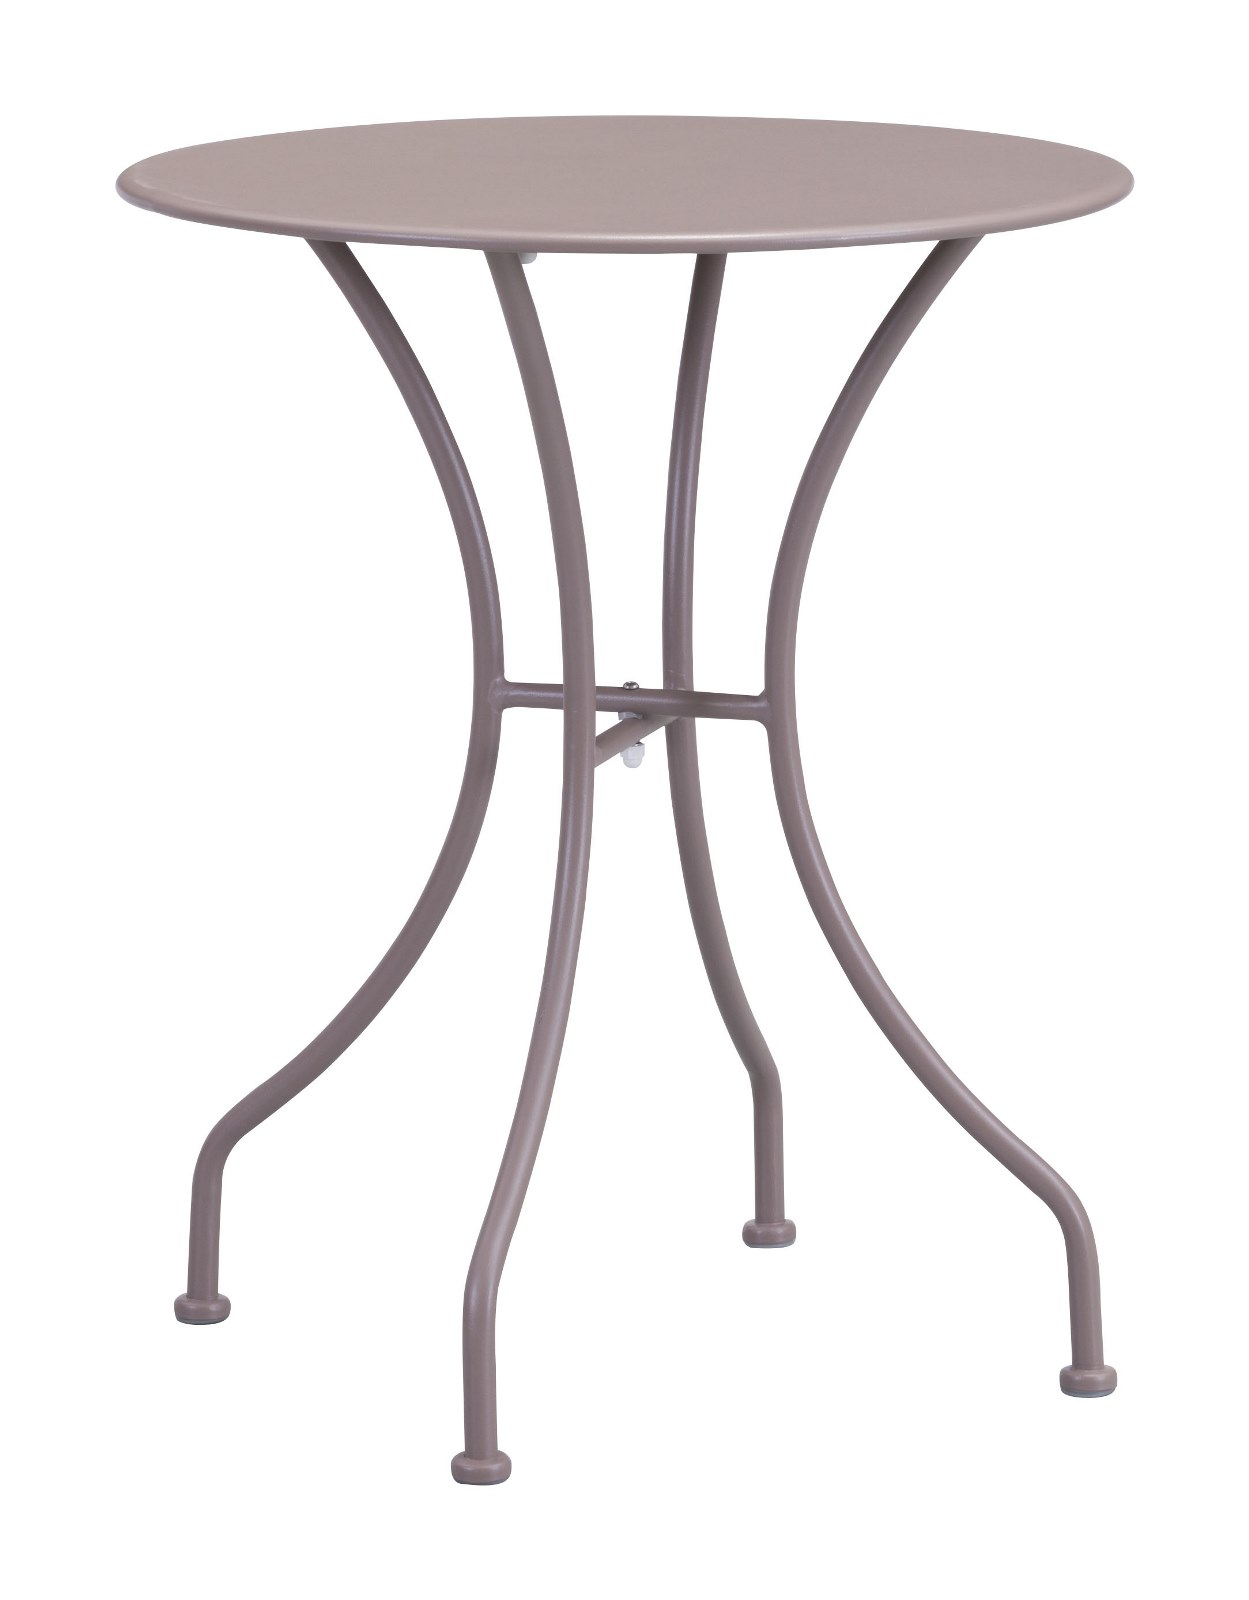 Modern Contemporary Outdoor Patio Dining Round Table, Beige, Metal